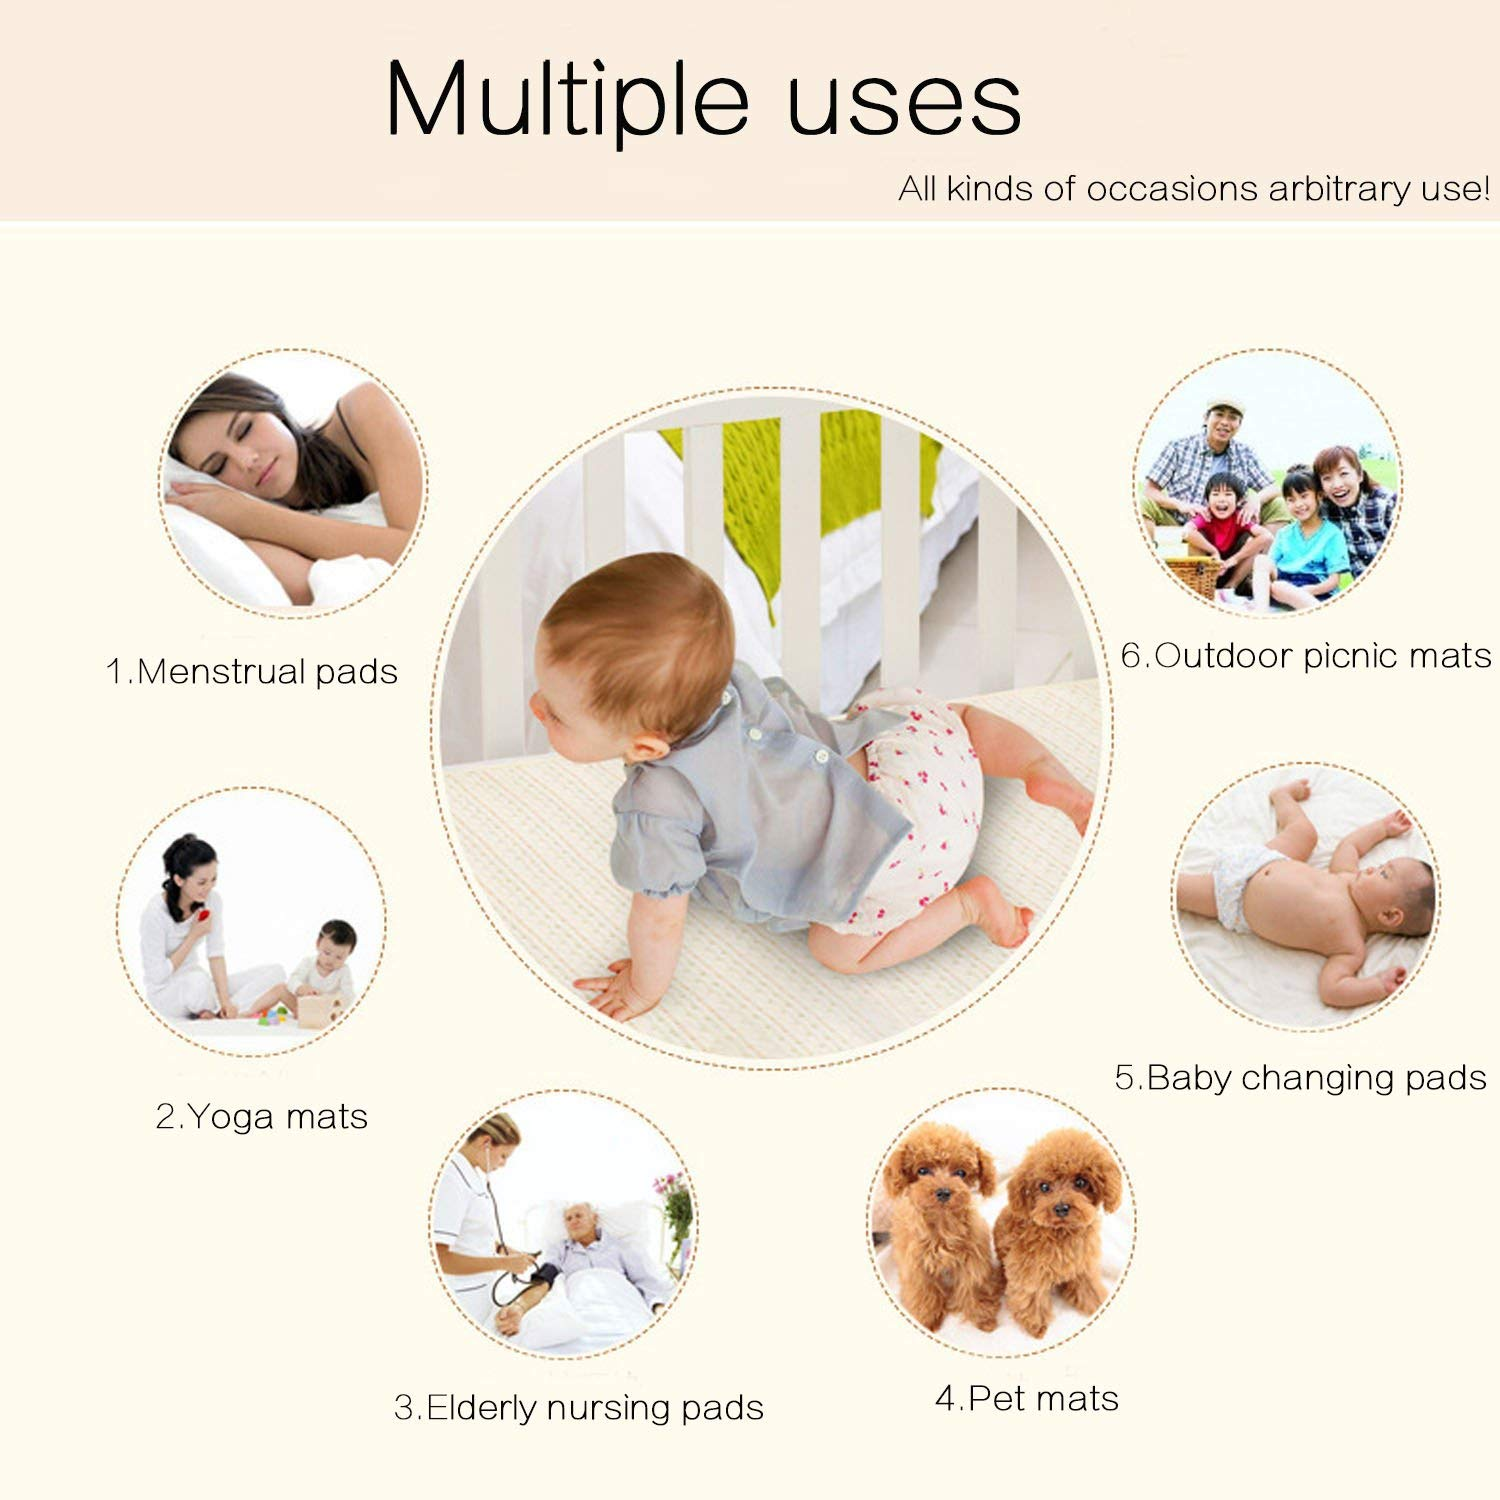 M 27.5x19.7inch Mattress Pads Diapering Sheet Protector Menstrual Pads Pack of 3 Baby Kid Waterproof Changing Pad